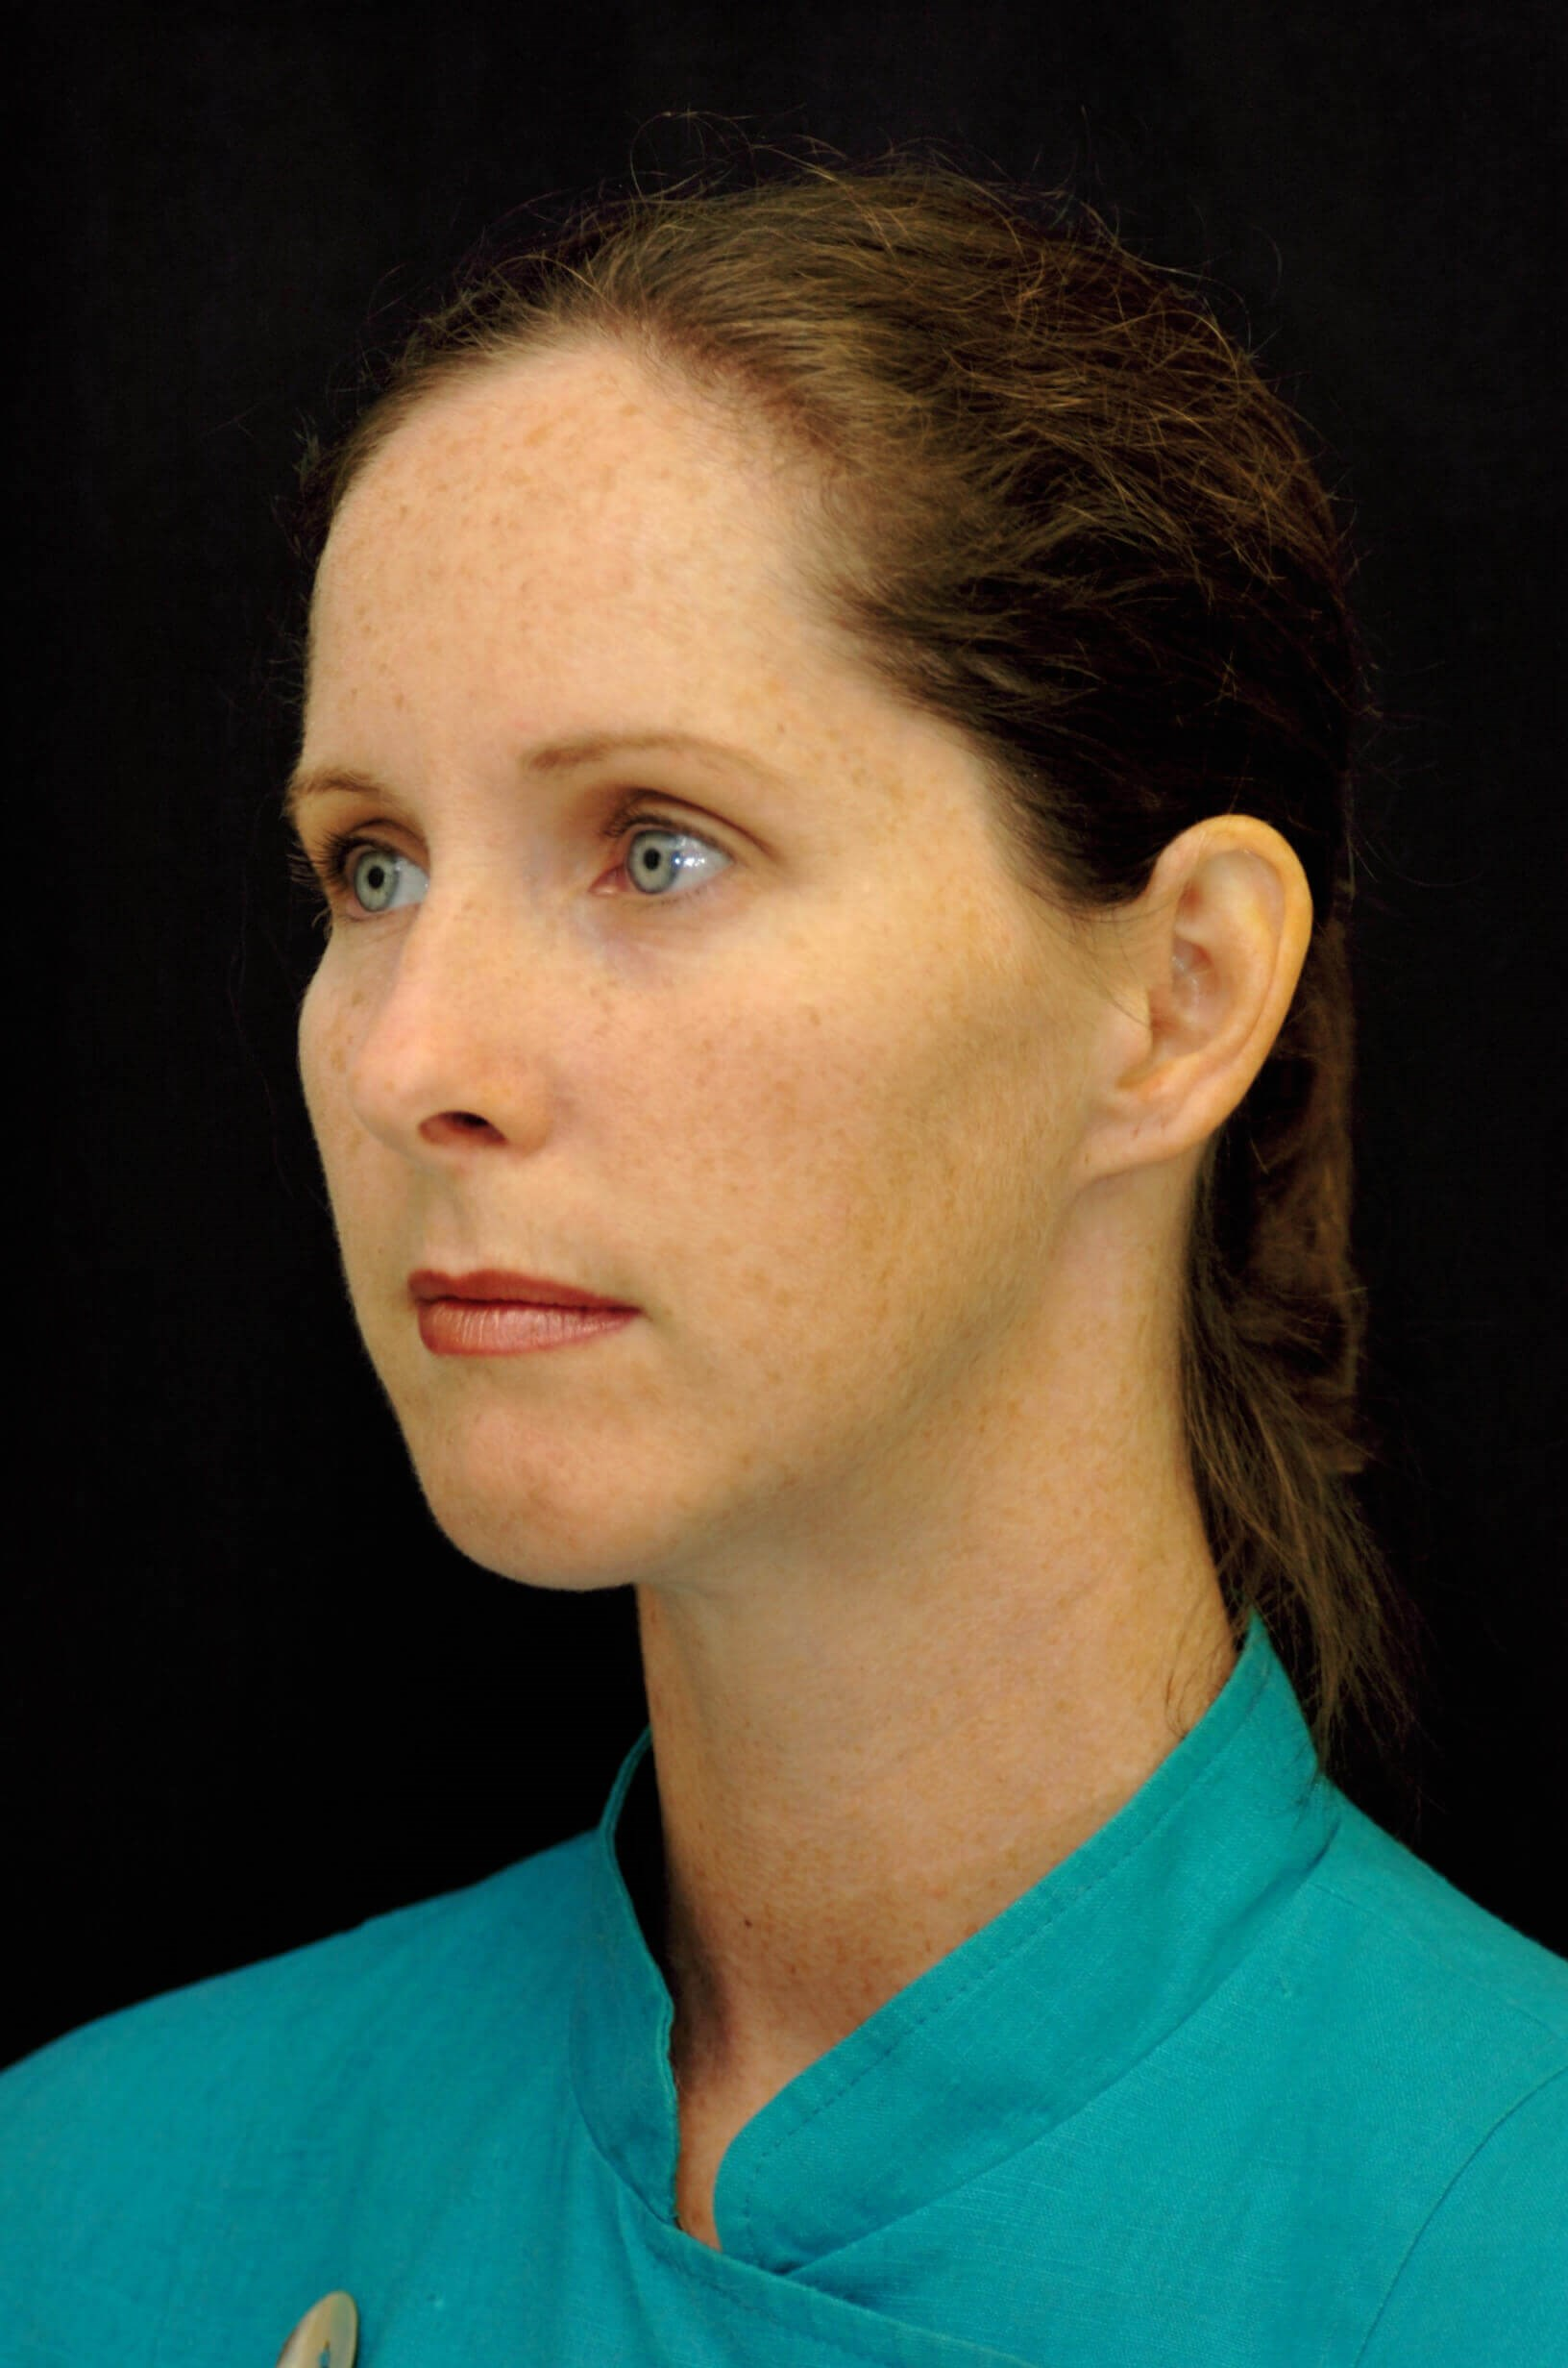 DALLAS WOMAN RESTORES BALANCE TO PROFILE WITH CHIN IMPLANT SURGERY